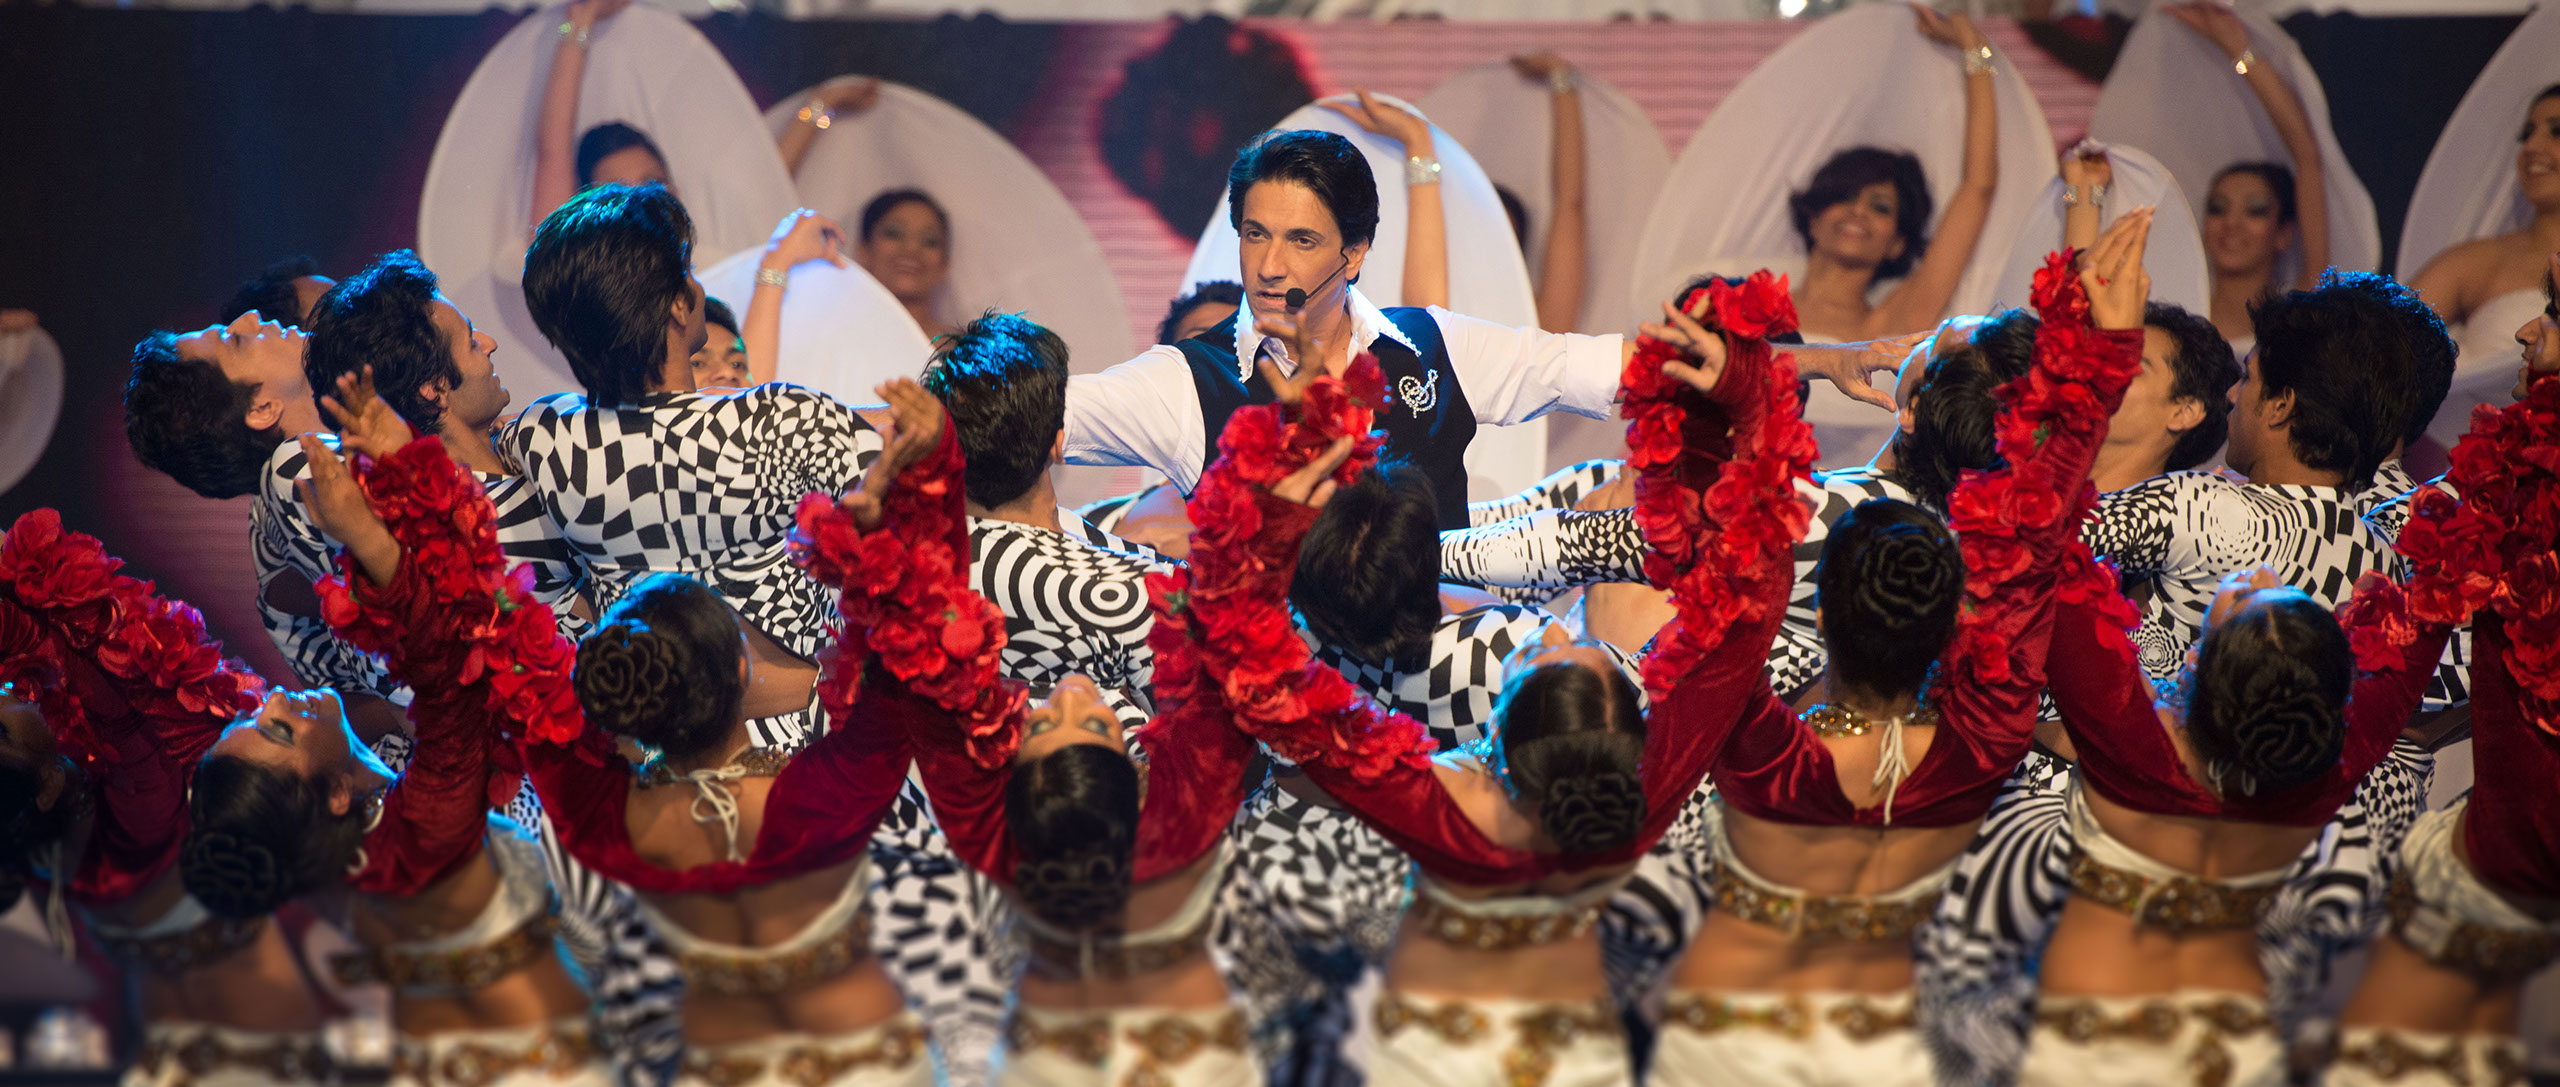 Shiamak Dance troupe will give performance at Singapore Indoor Stadium on August 15.